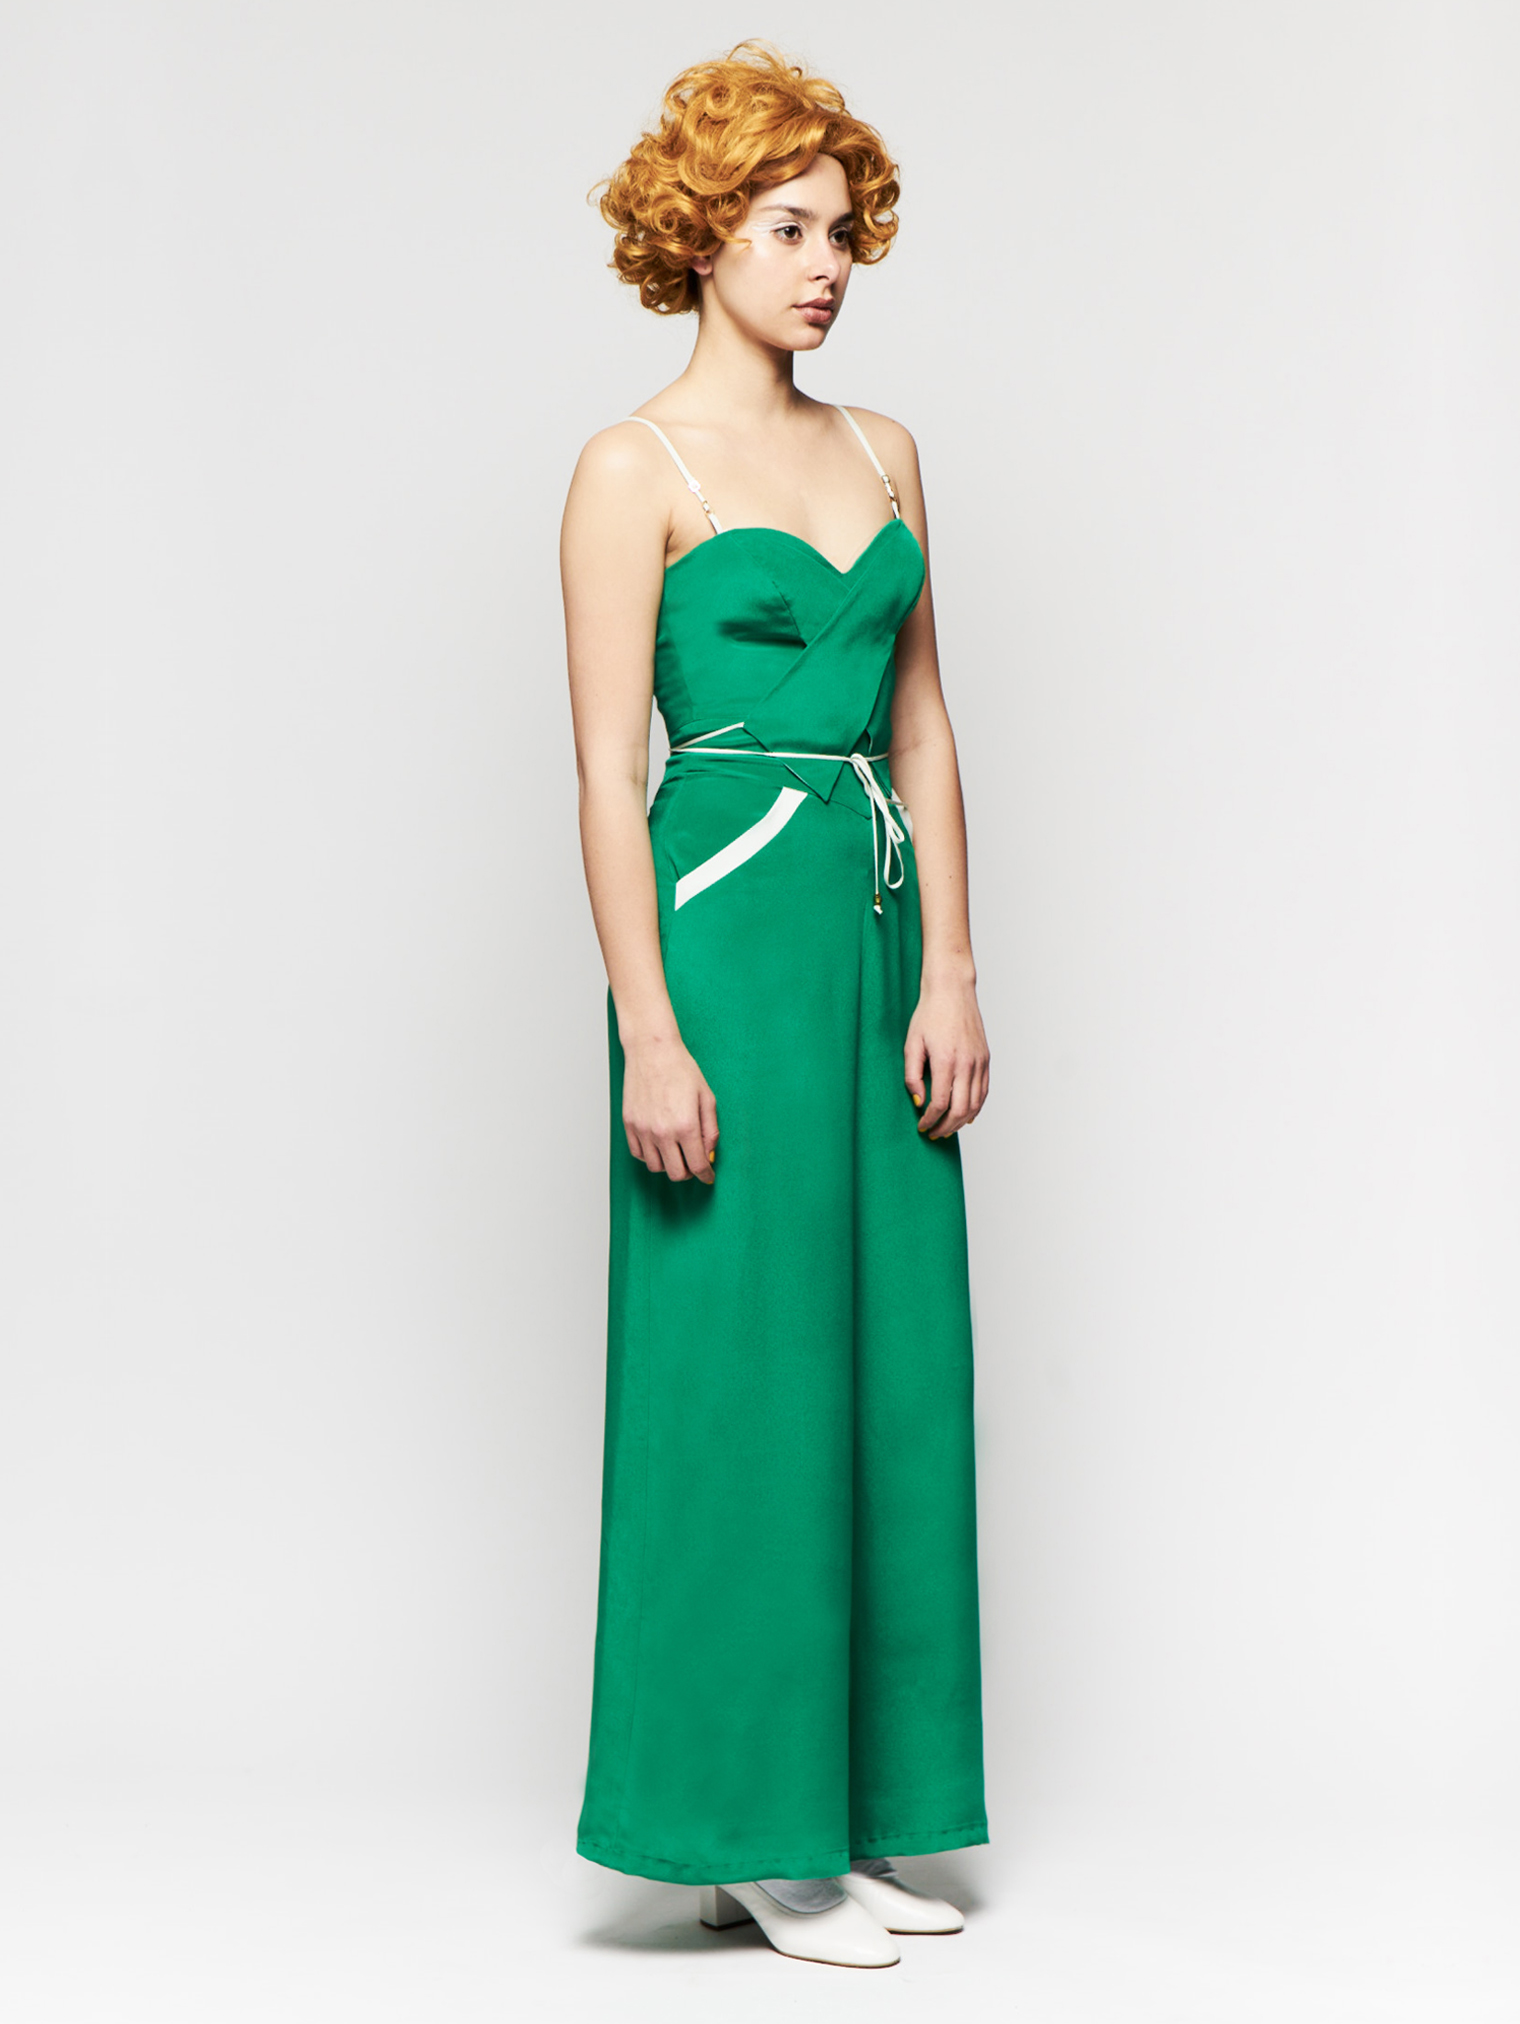 ANNULUS JUMPER  Emerald silk crepe spaghetti strap jumper with pockets. Price upon request.